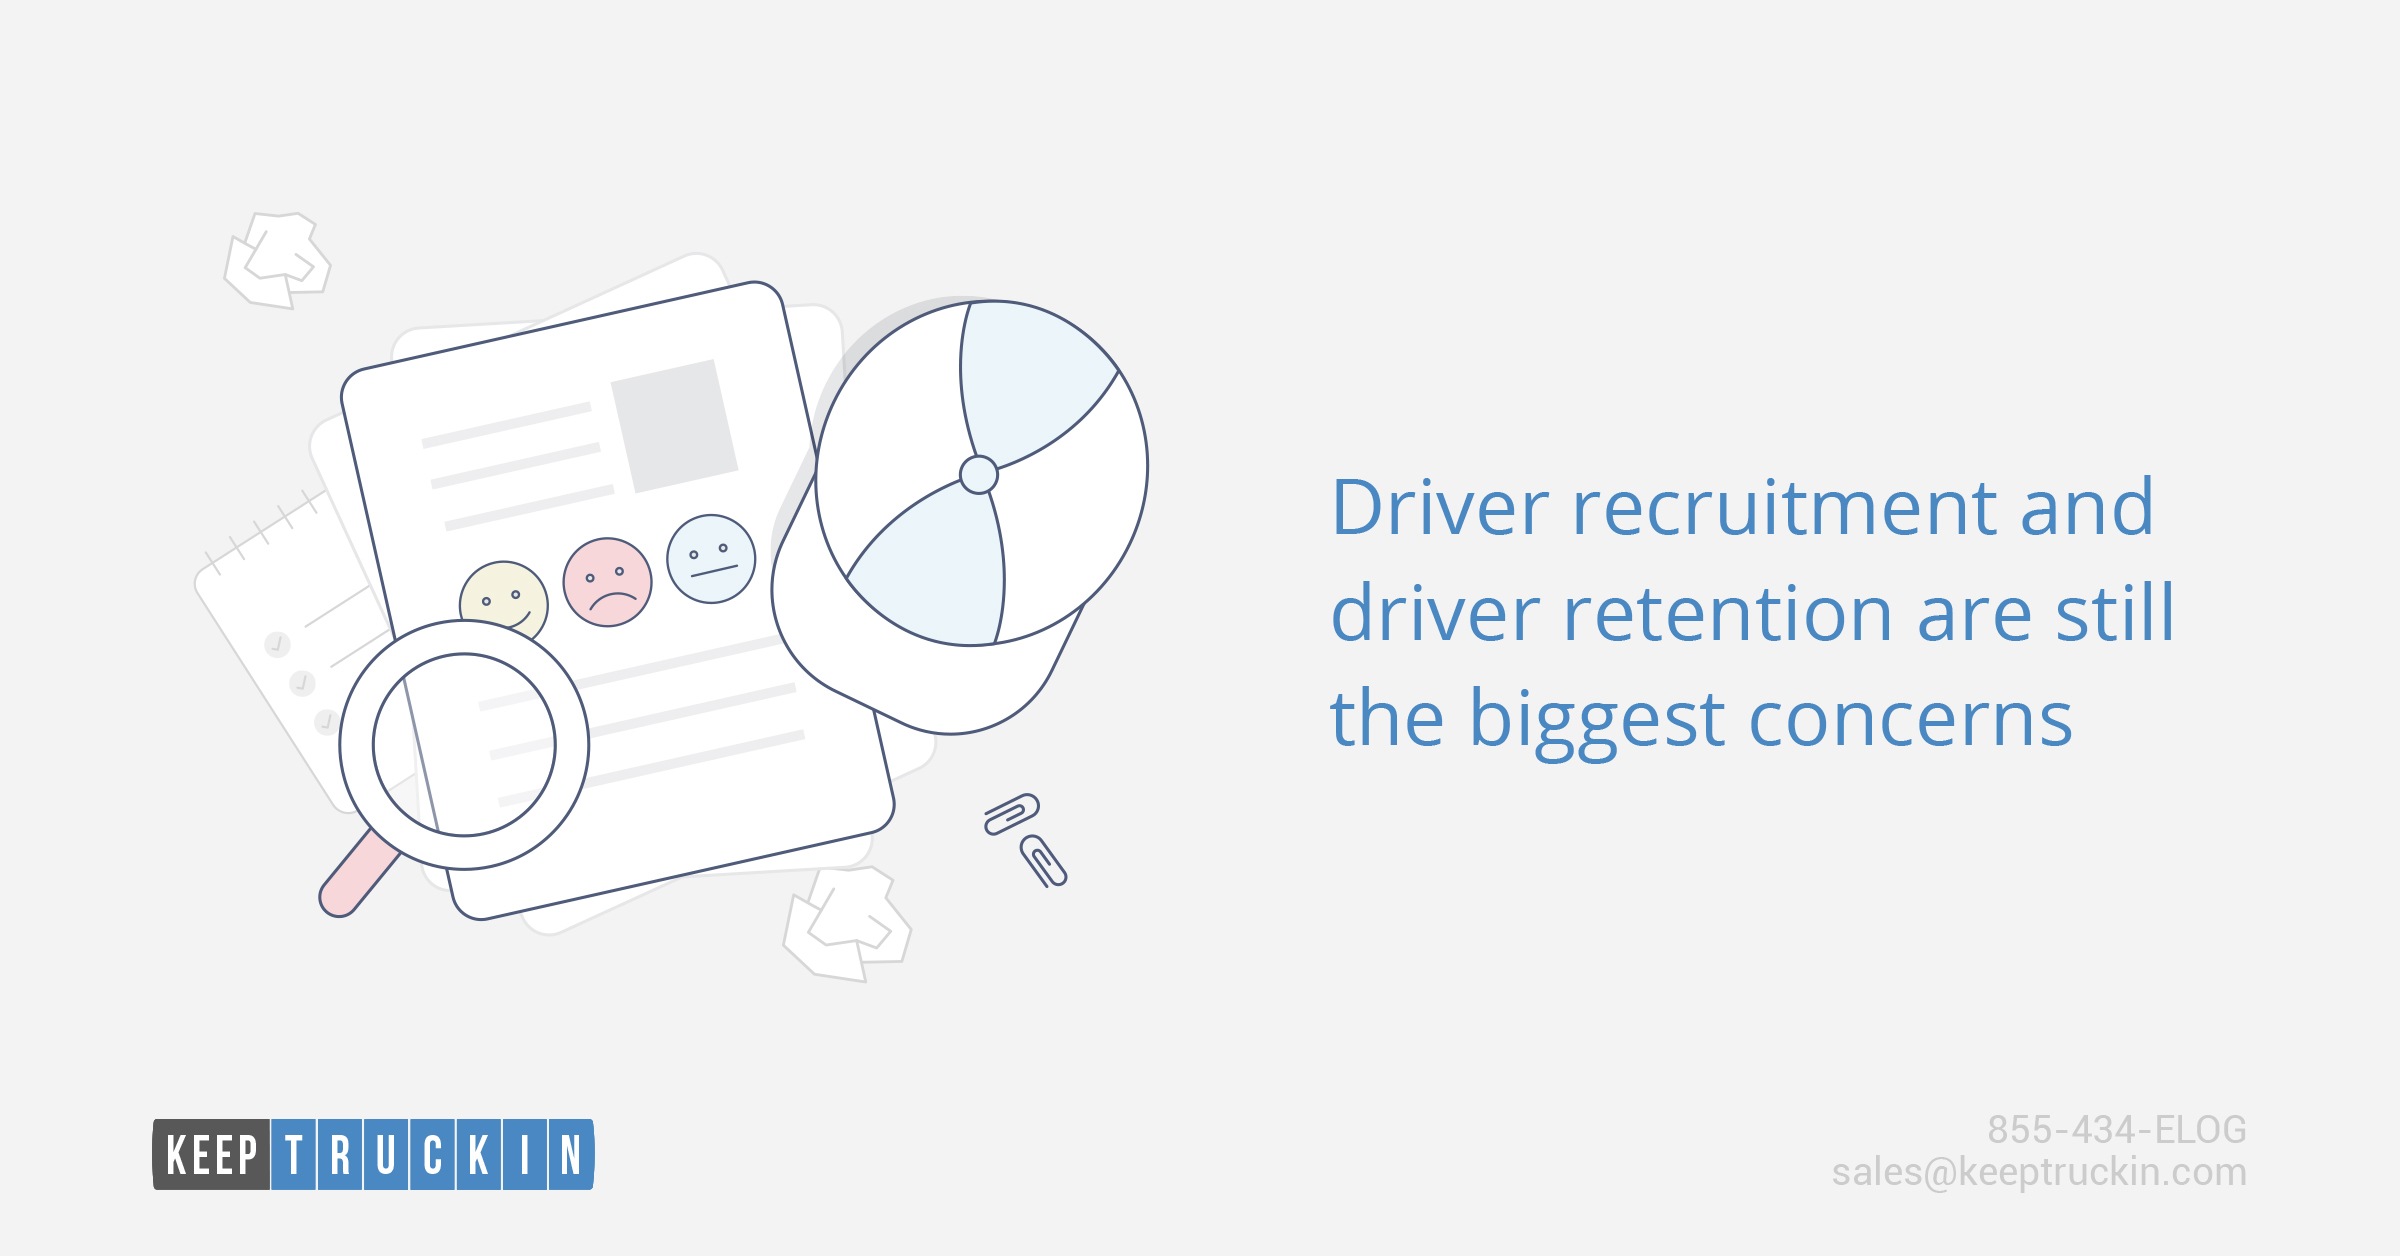 Driver recruitment and driver retention are still the biggest concerns